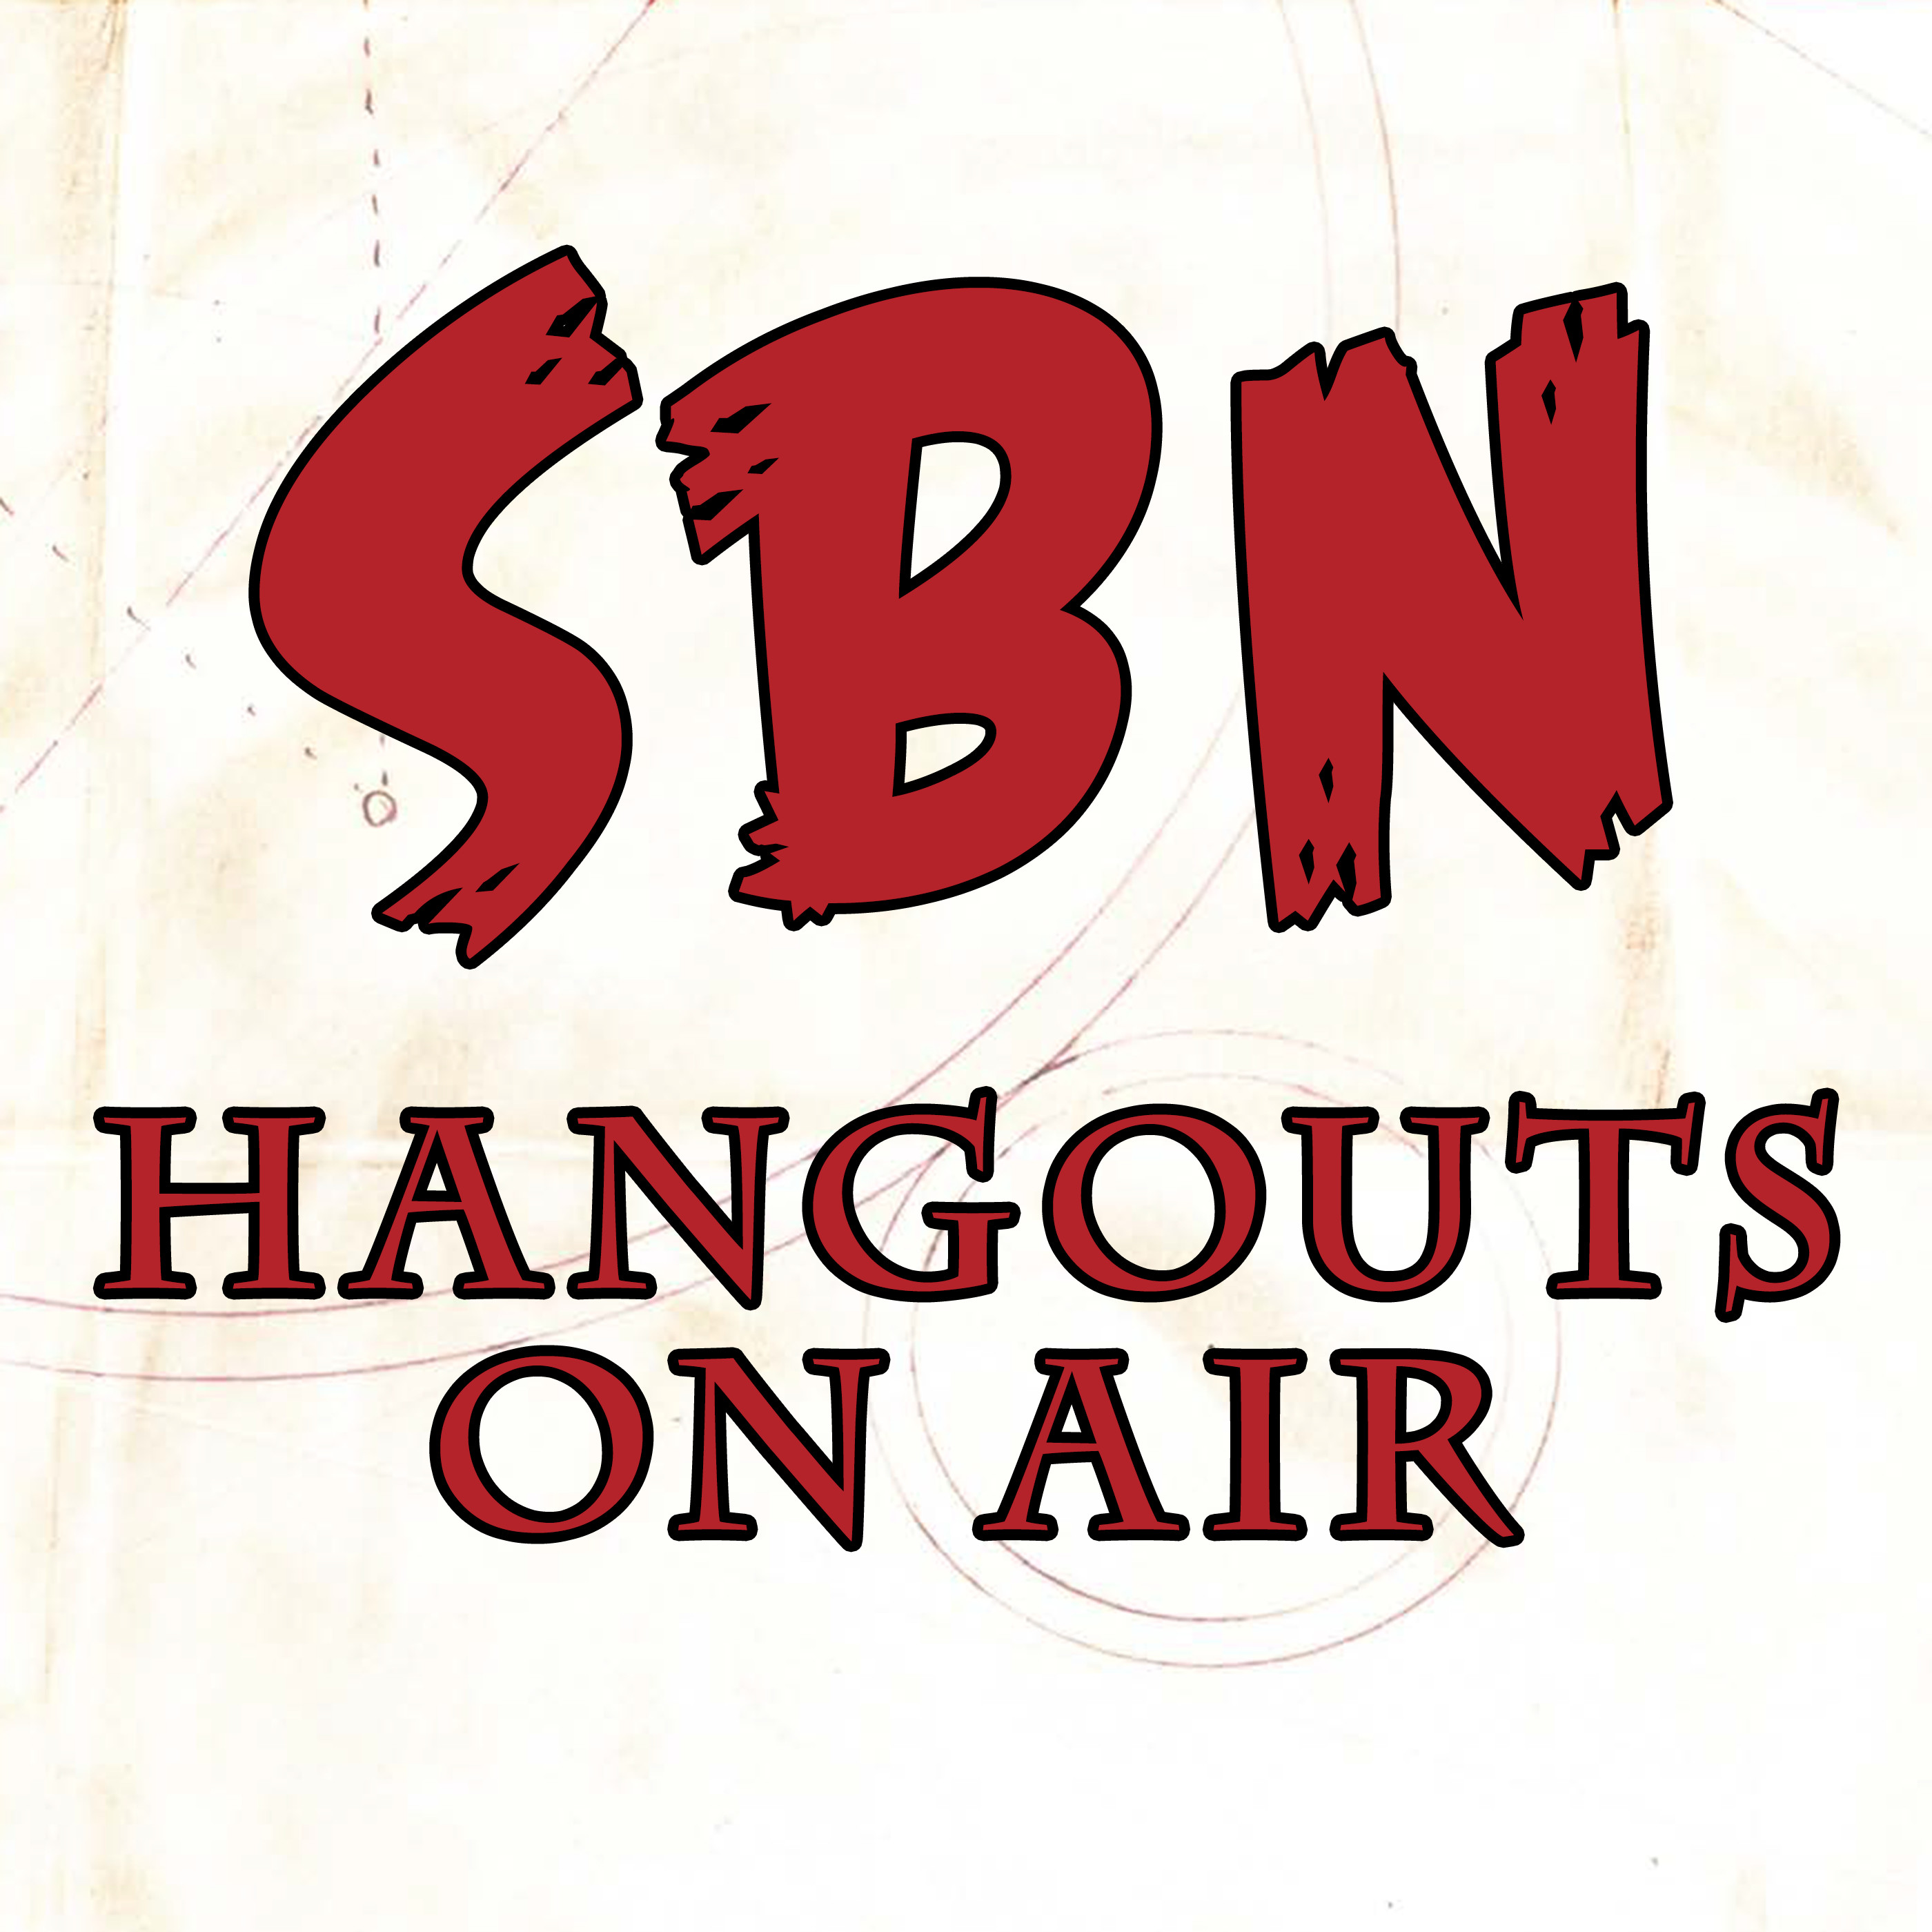 Savage Bloggers Network Hangouts on Air - The Savage Worlds podcast featuring guest interviews and discussions